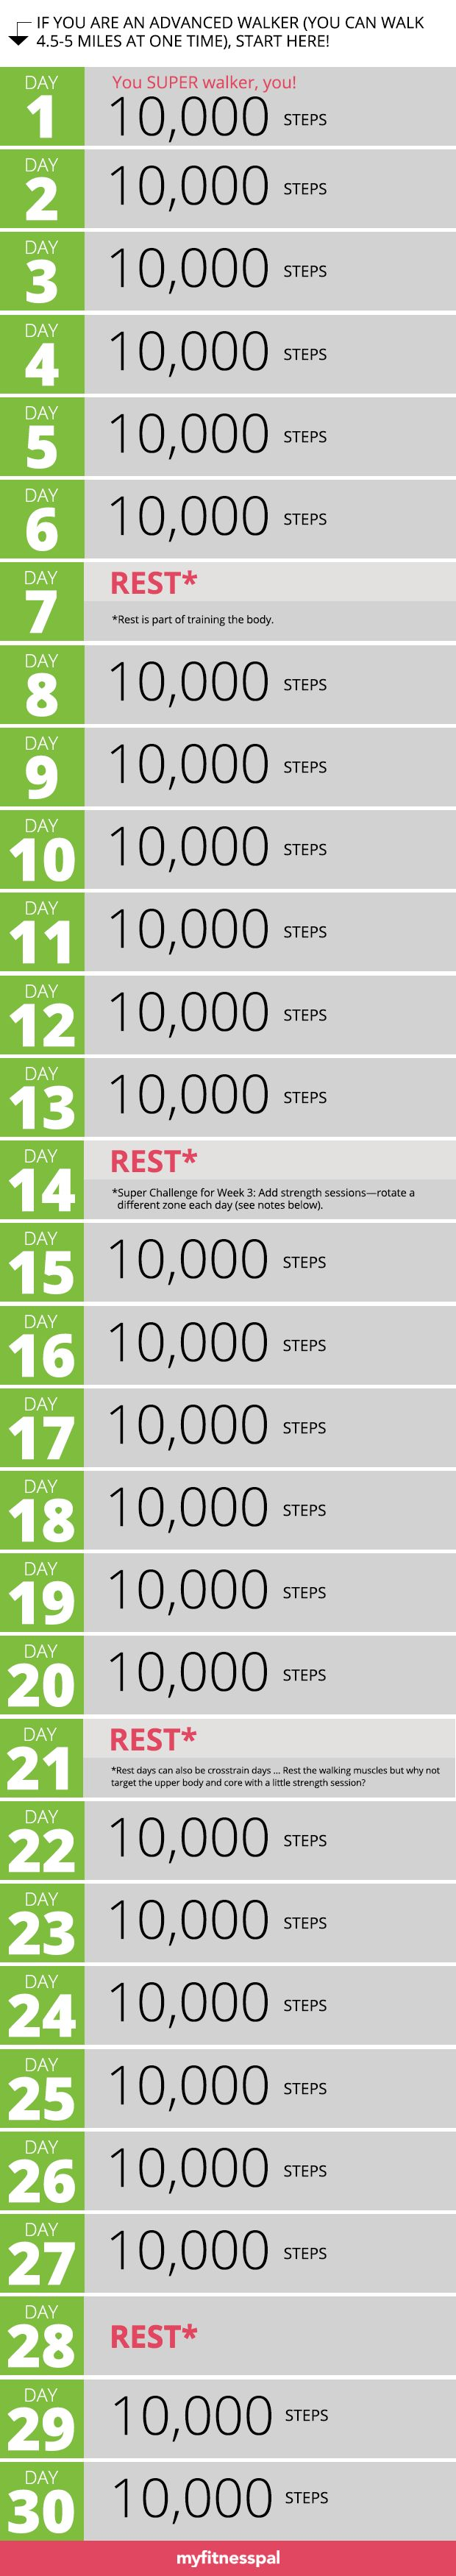 30-DAY CHALLENGE / MOVE / WALKING / APRIL 1, 2015 The 30-Day Walking Challenge | advanced training plan 10,000 steps @myfitnesspal